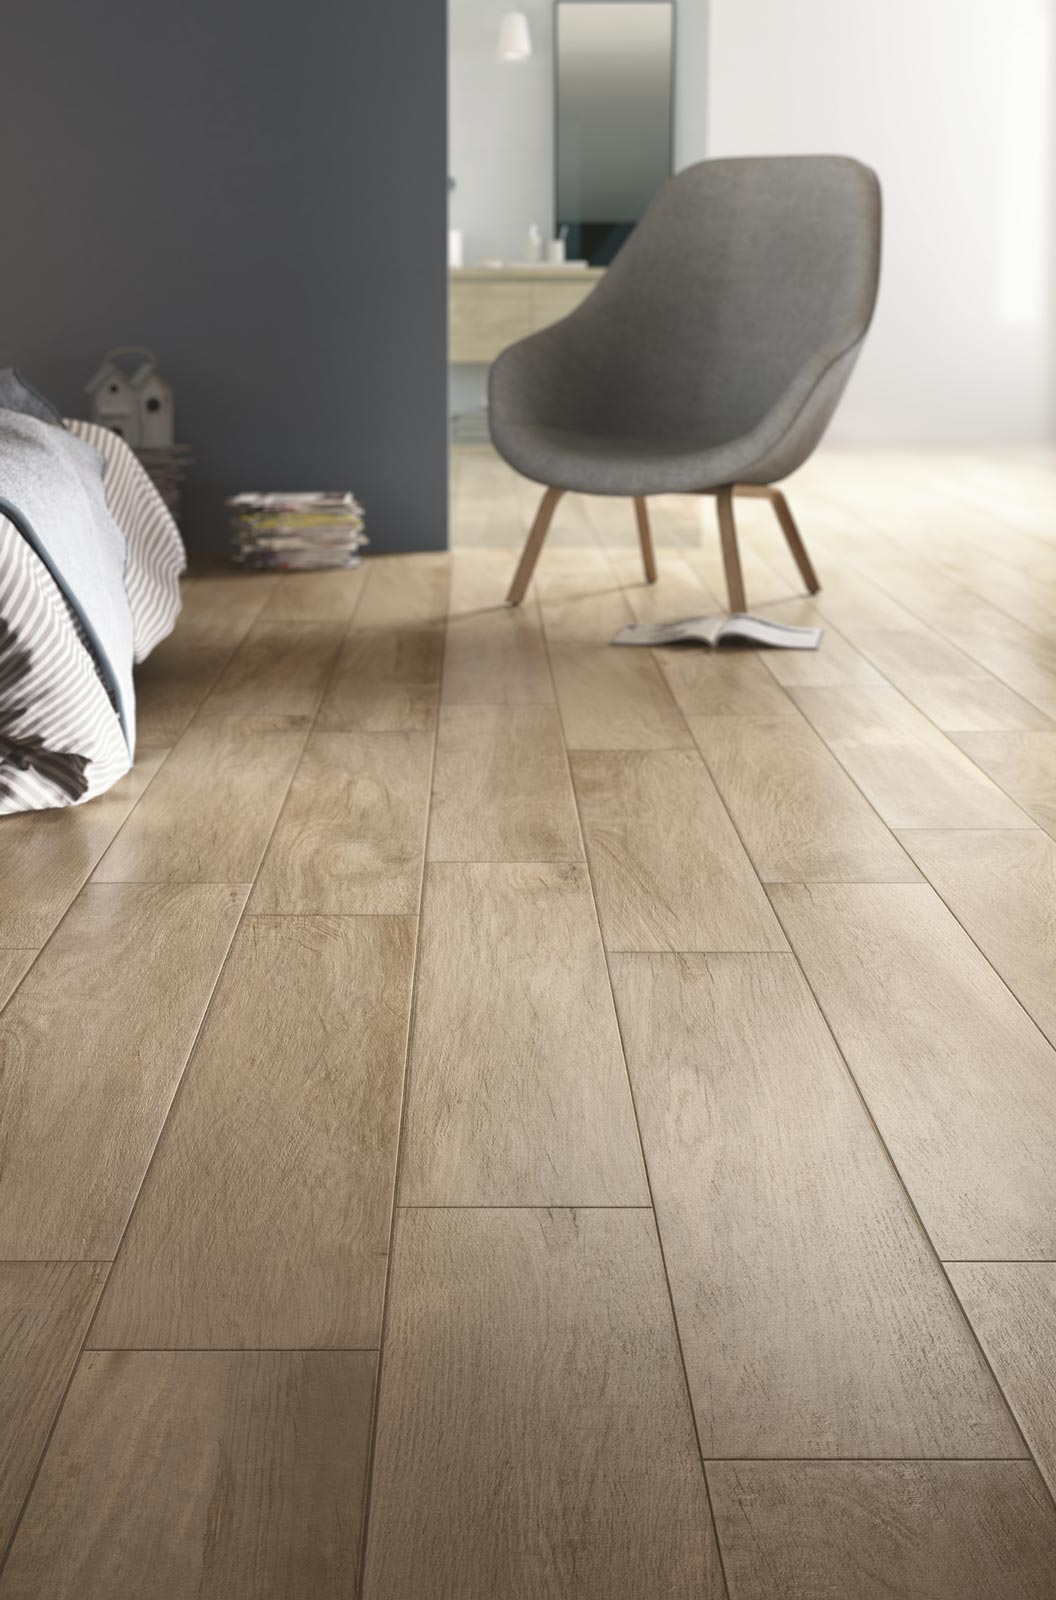 Woodplace wood effect porcelain stoneware ragno for Pose carrelage sol imitation parquet